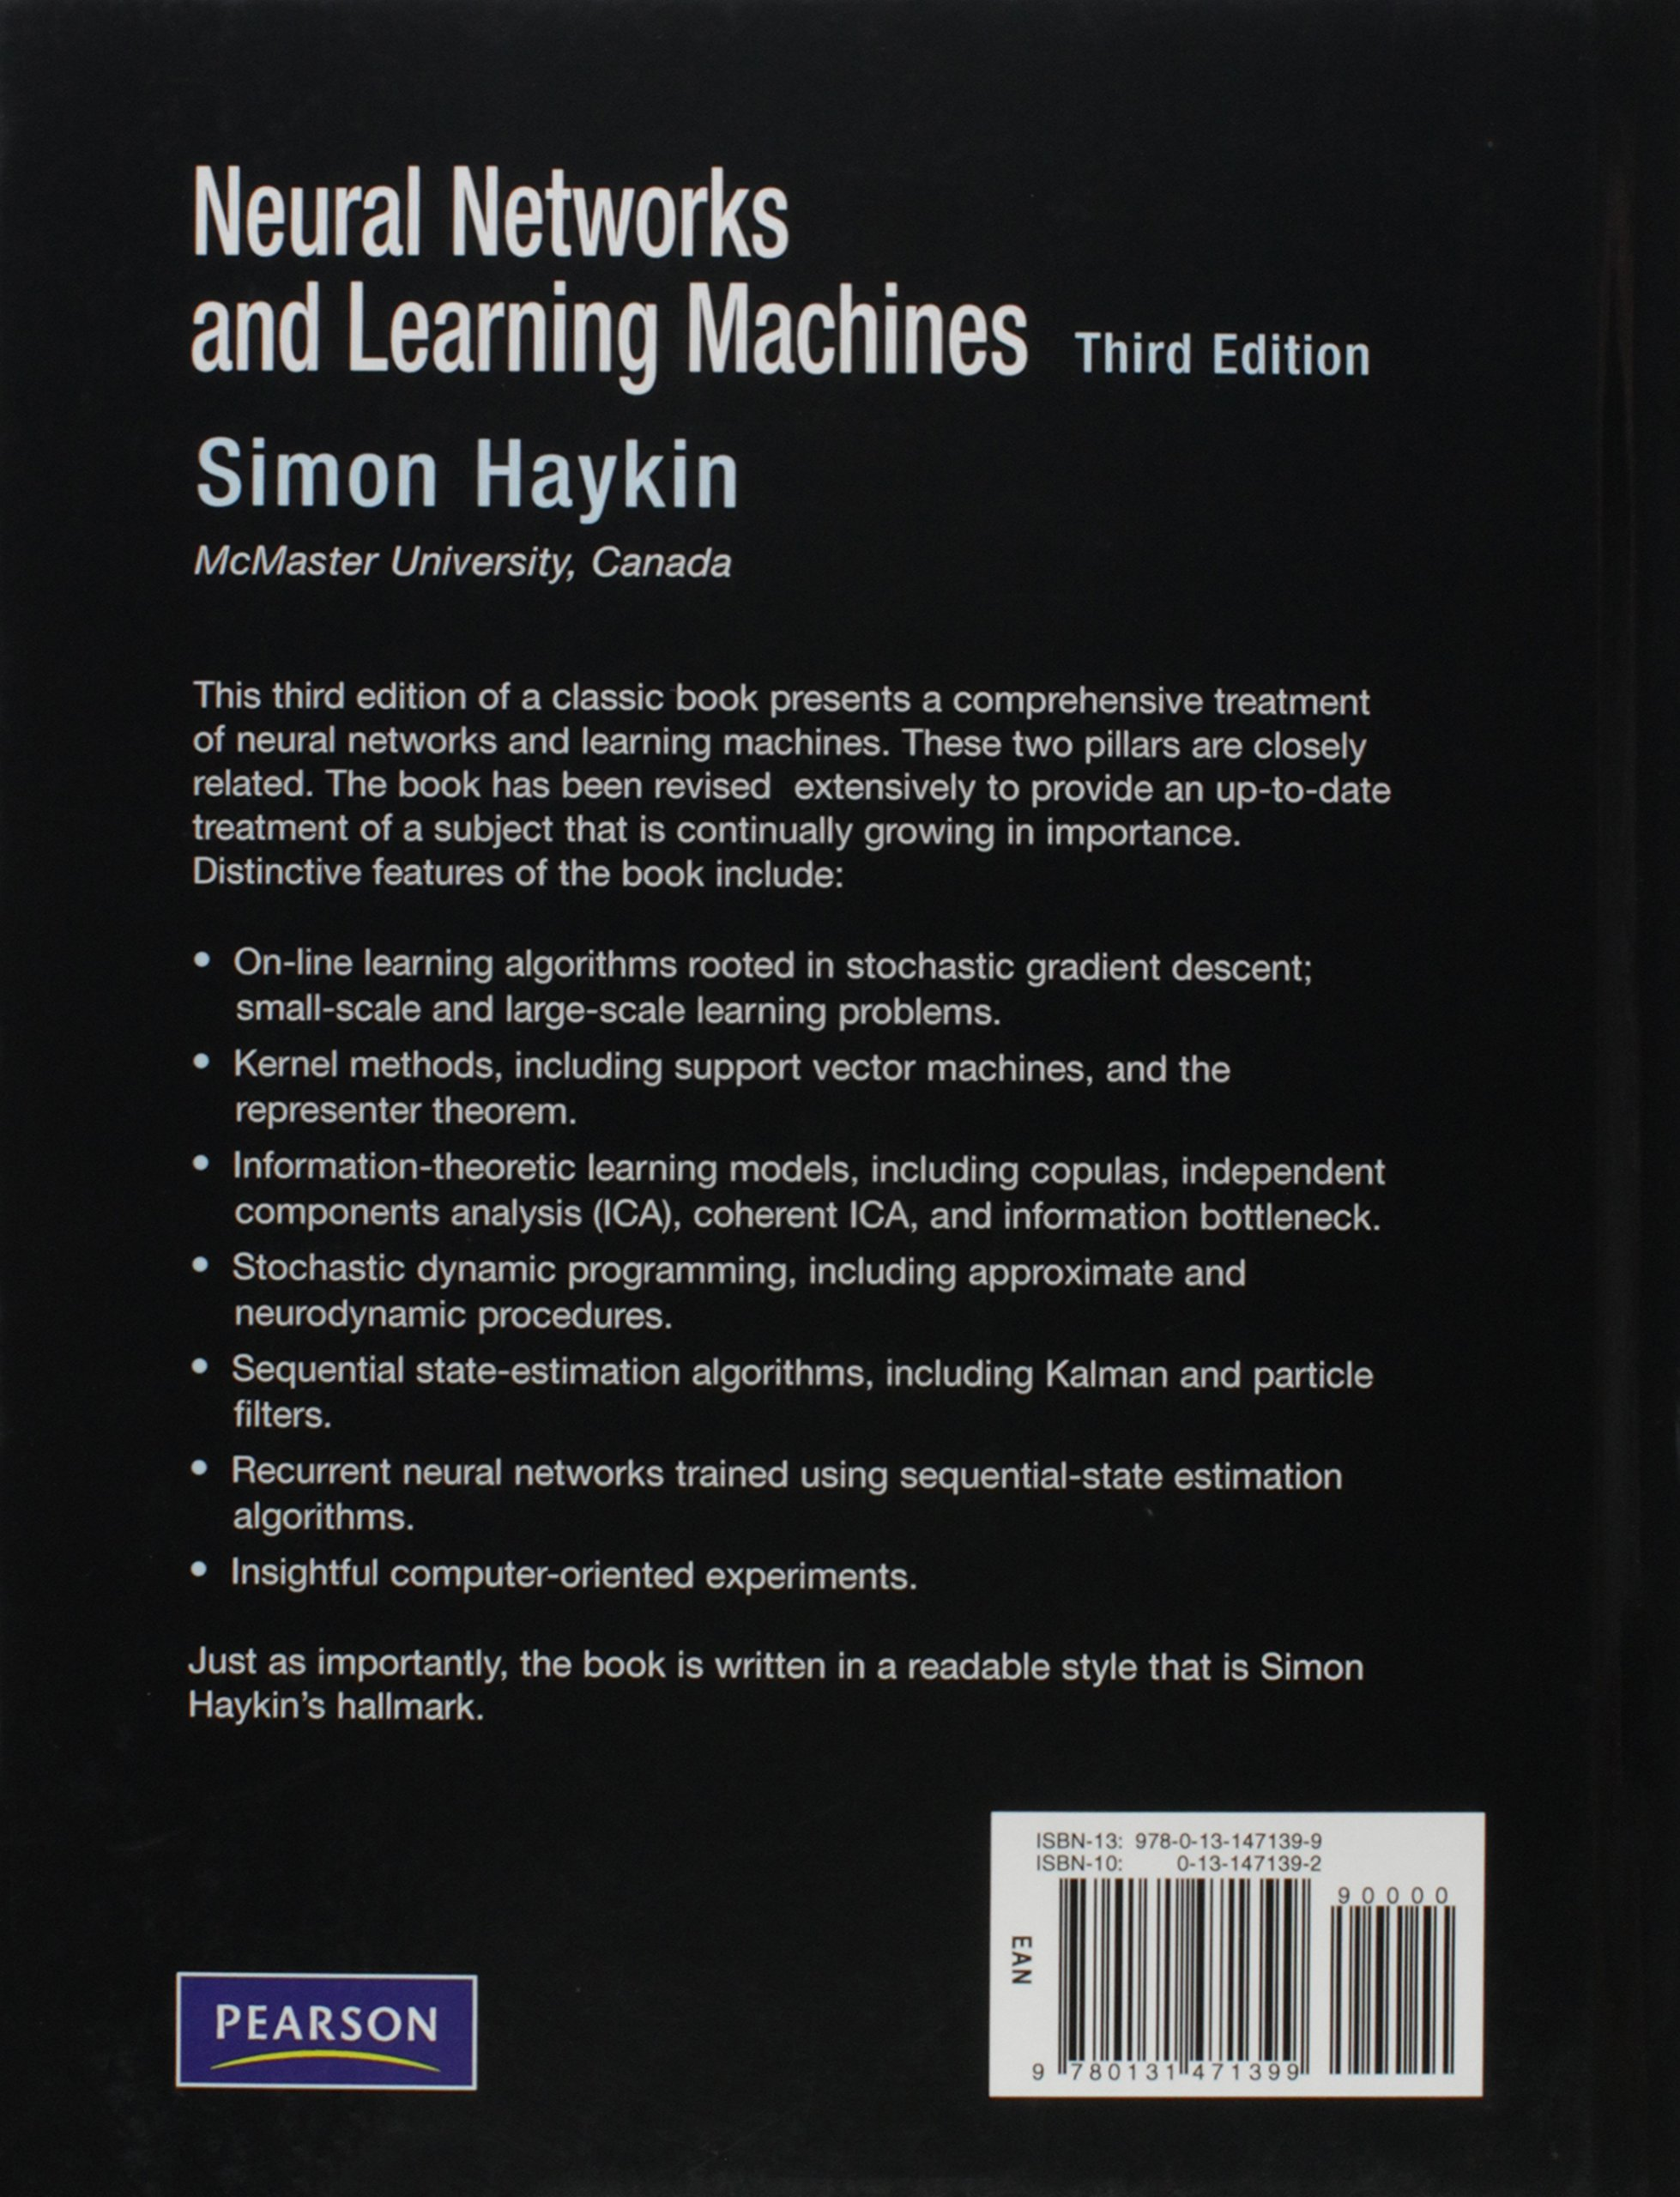 Buy Neural Networks and Learning Machines Book Online at Low